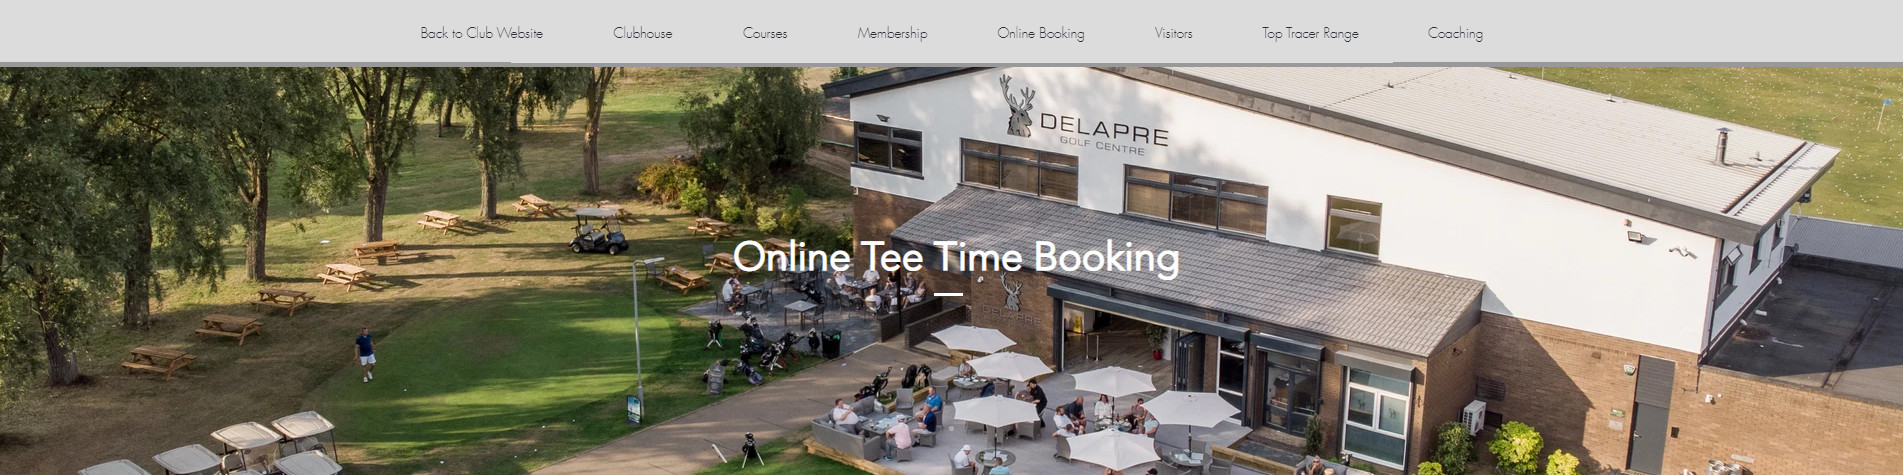 Delapre Golf Centre